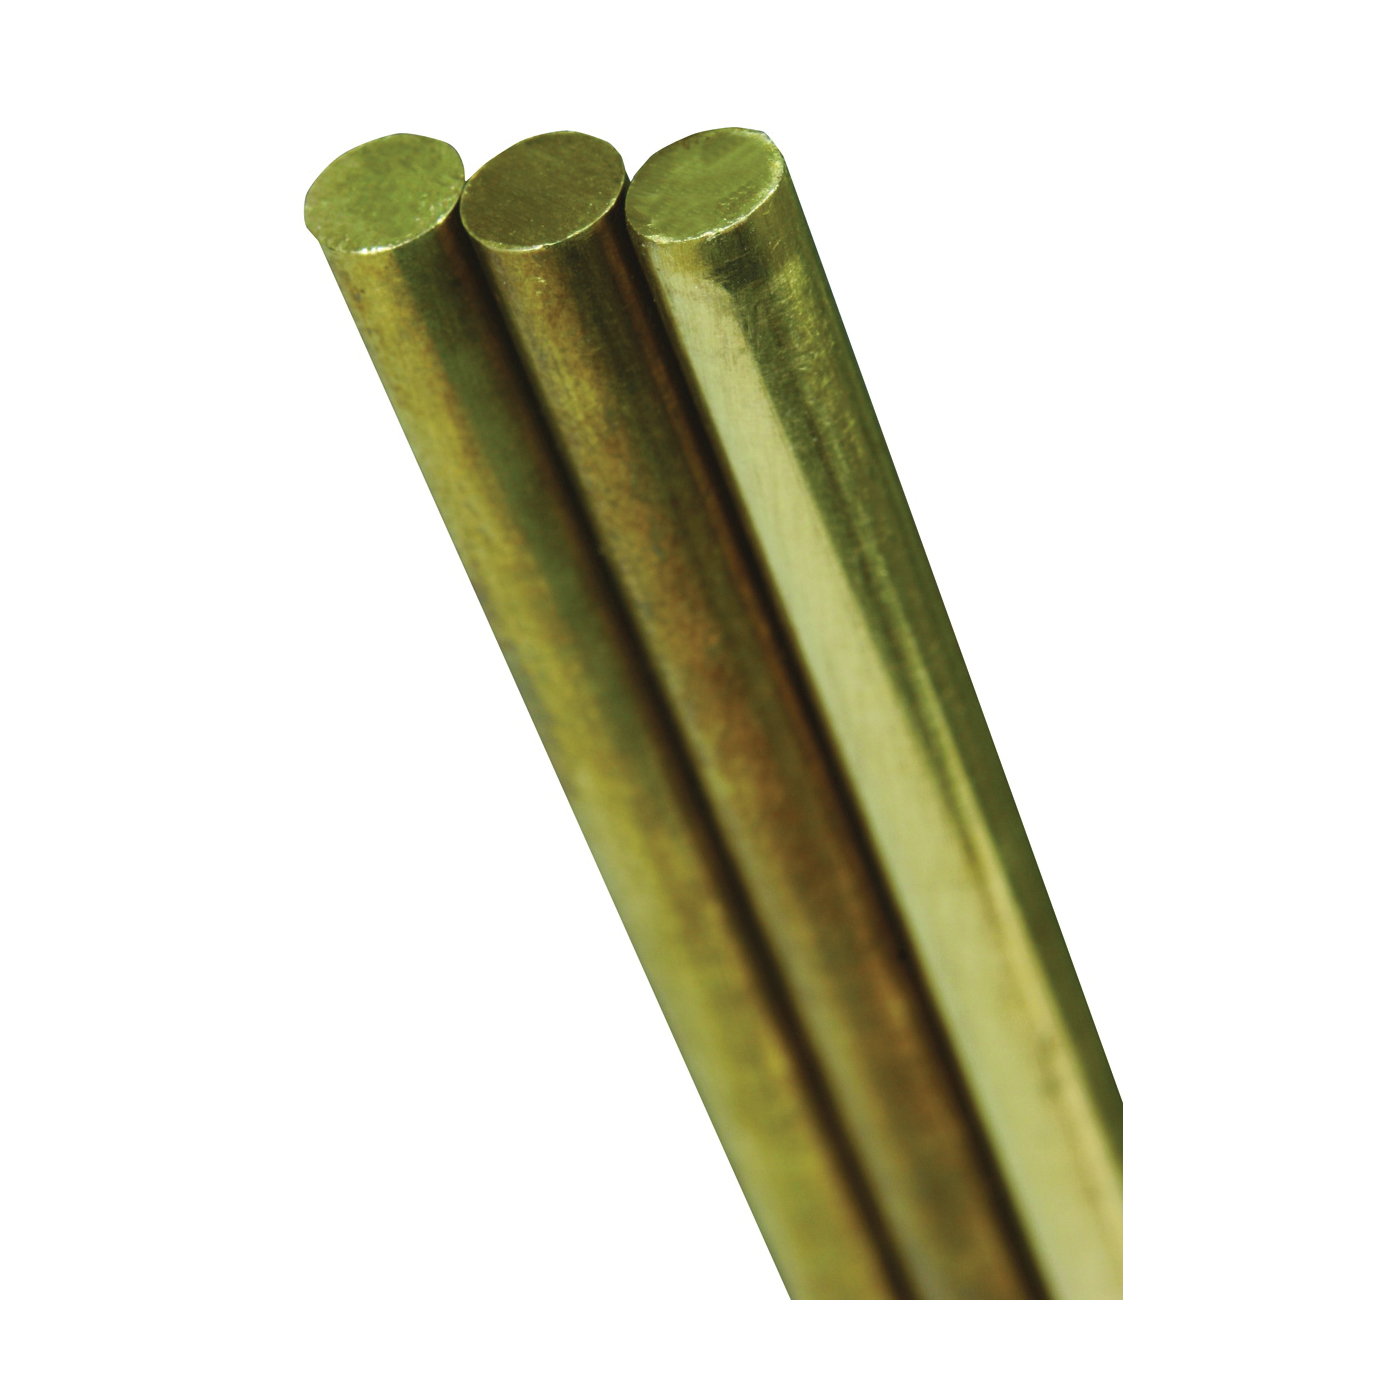 Picture of K & S 8162 Round Rod, 1/16 in Dia, 12 in L, 260 Brass, 260 Grade